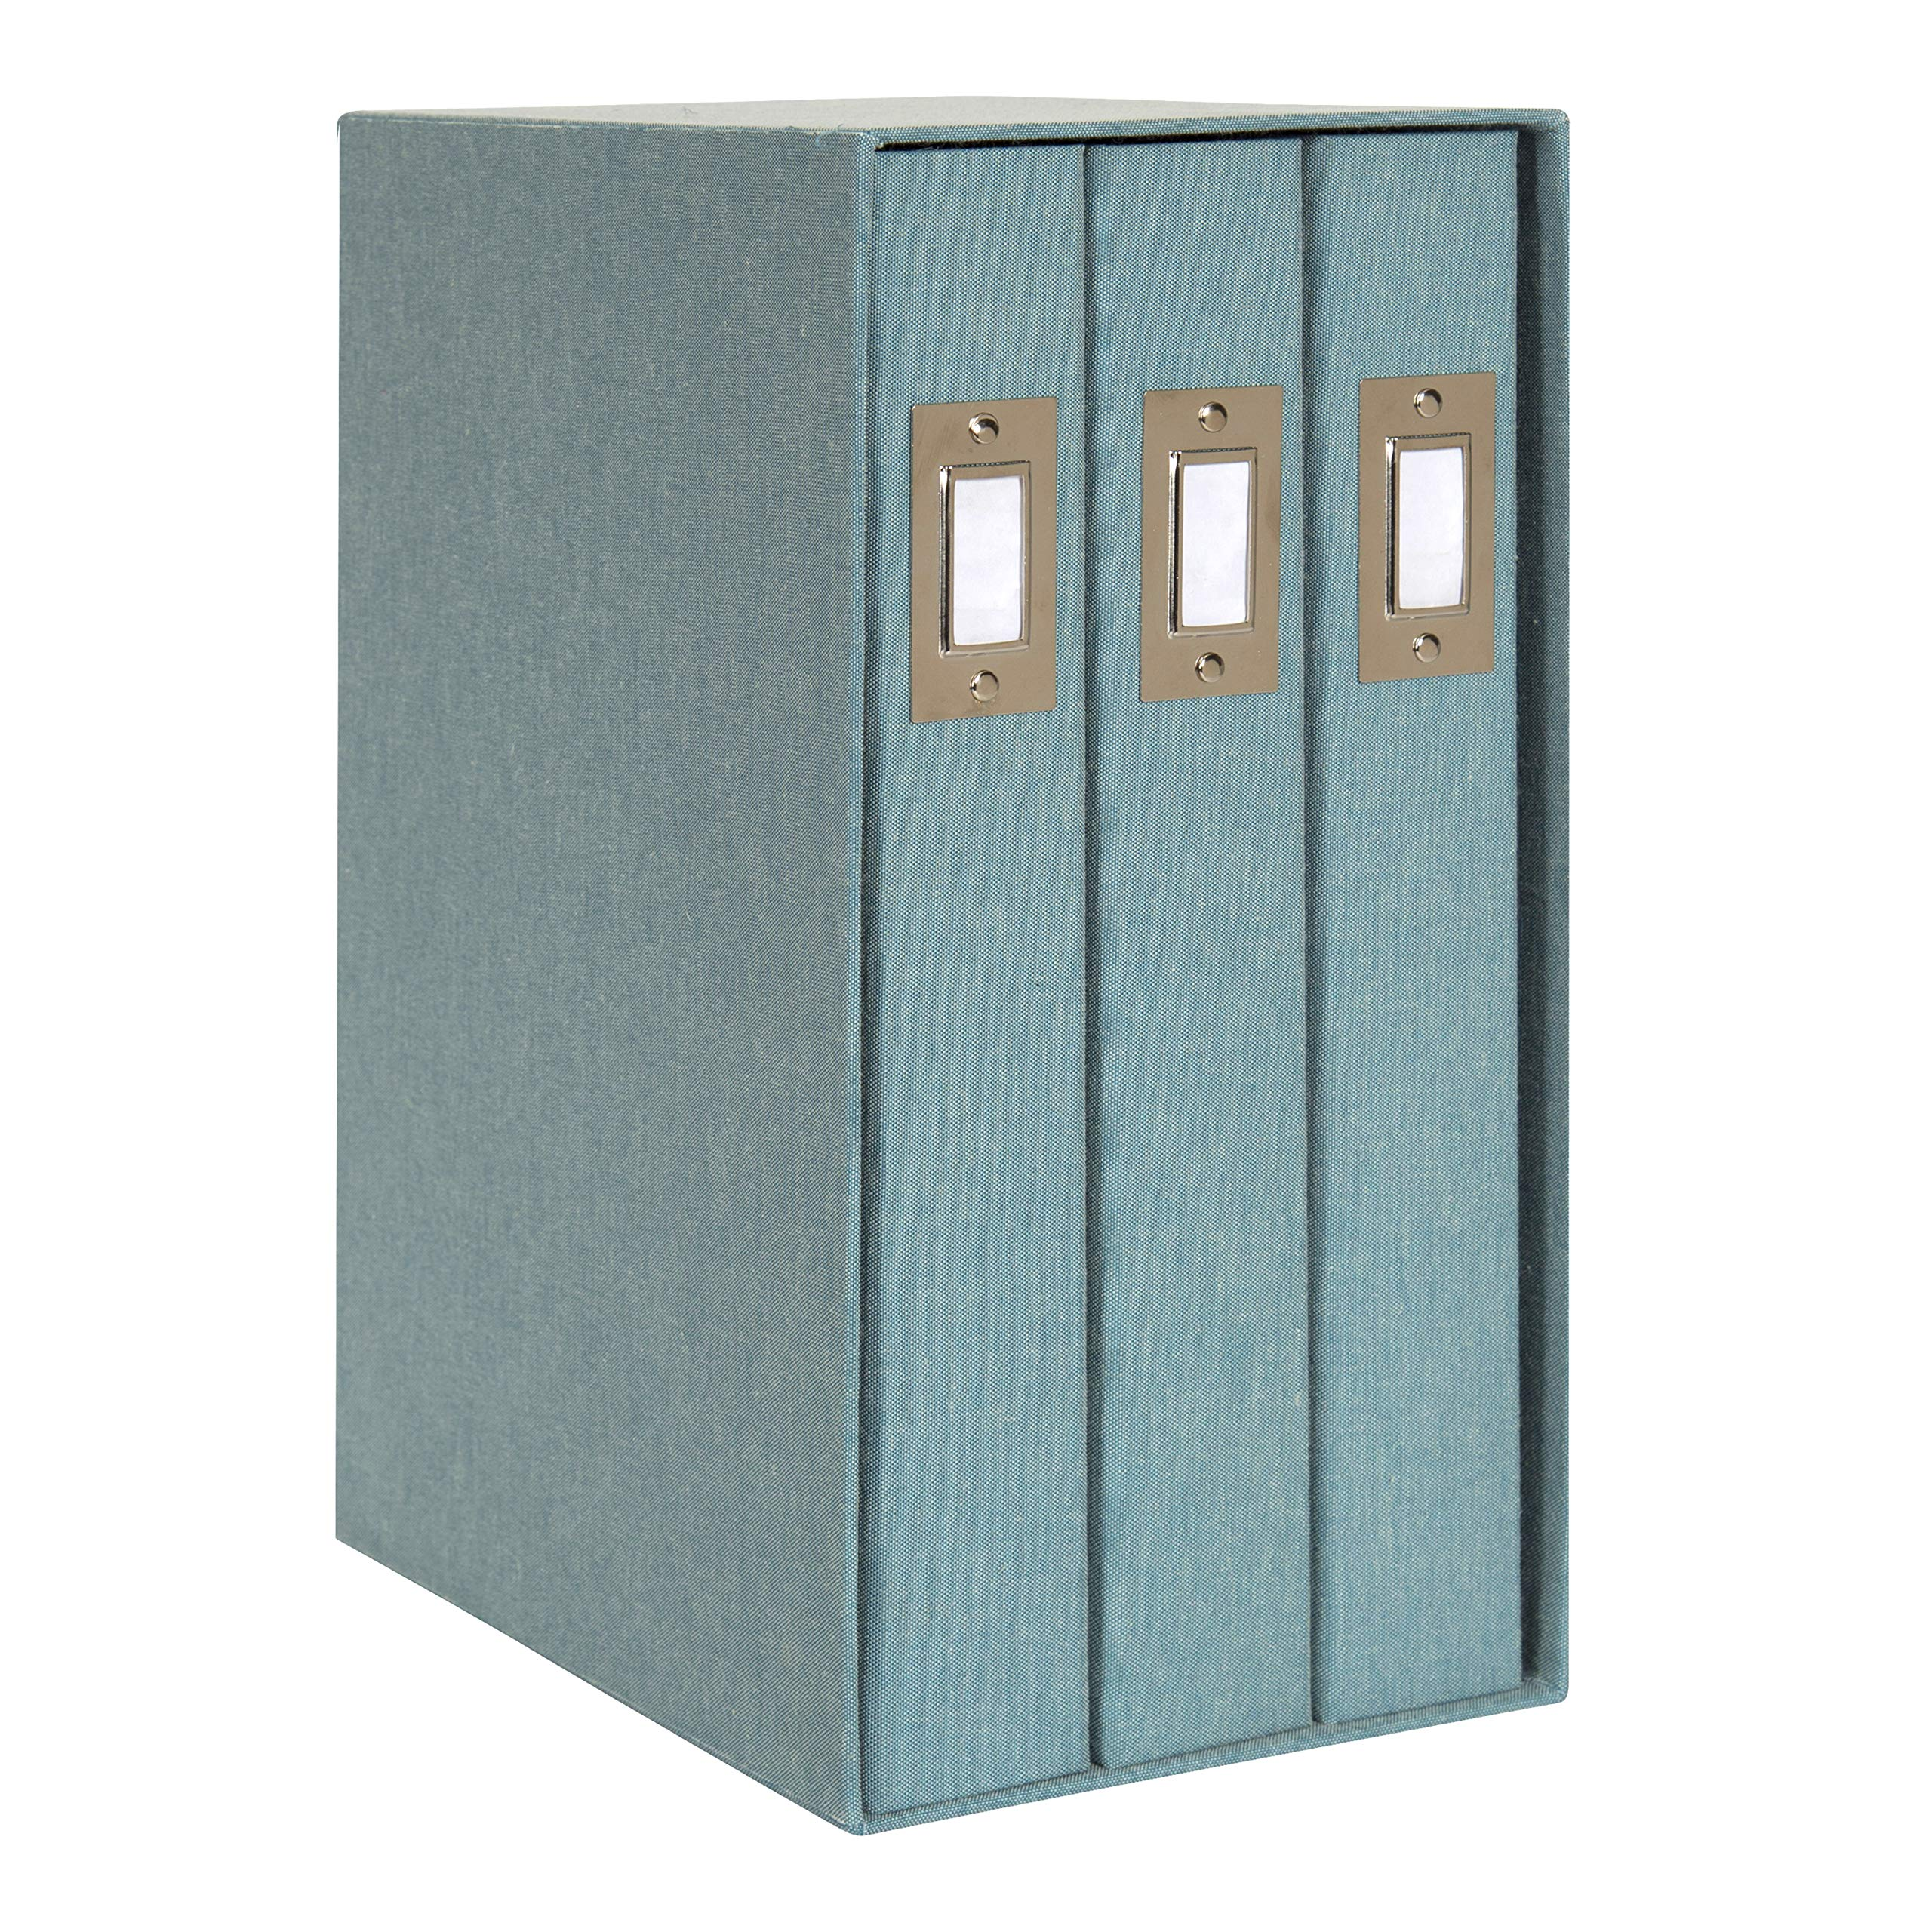 DesignOvation Cydney Set of 3 Large Fabric Albums in Display Box, Holds 4x6 Photos, 300, Teal by DesignOvation